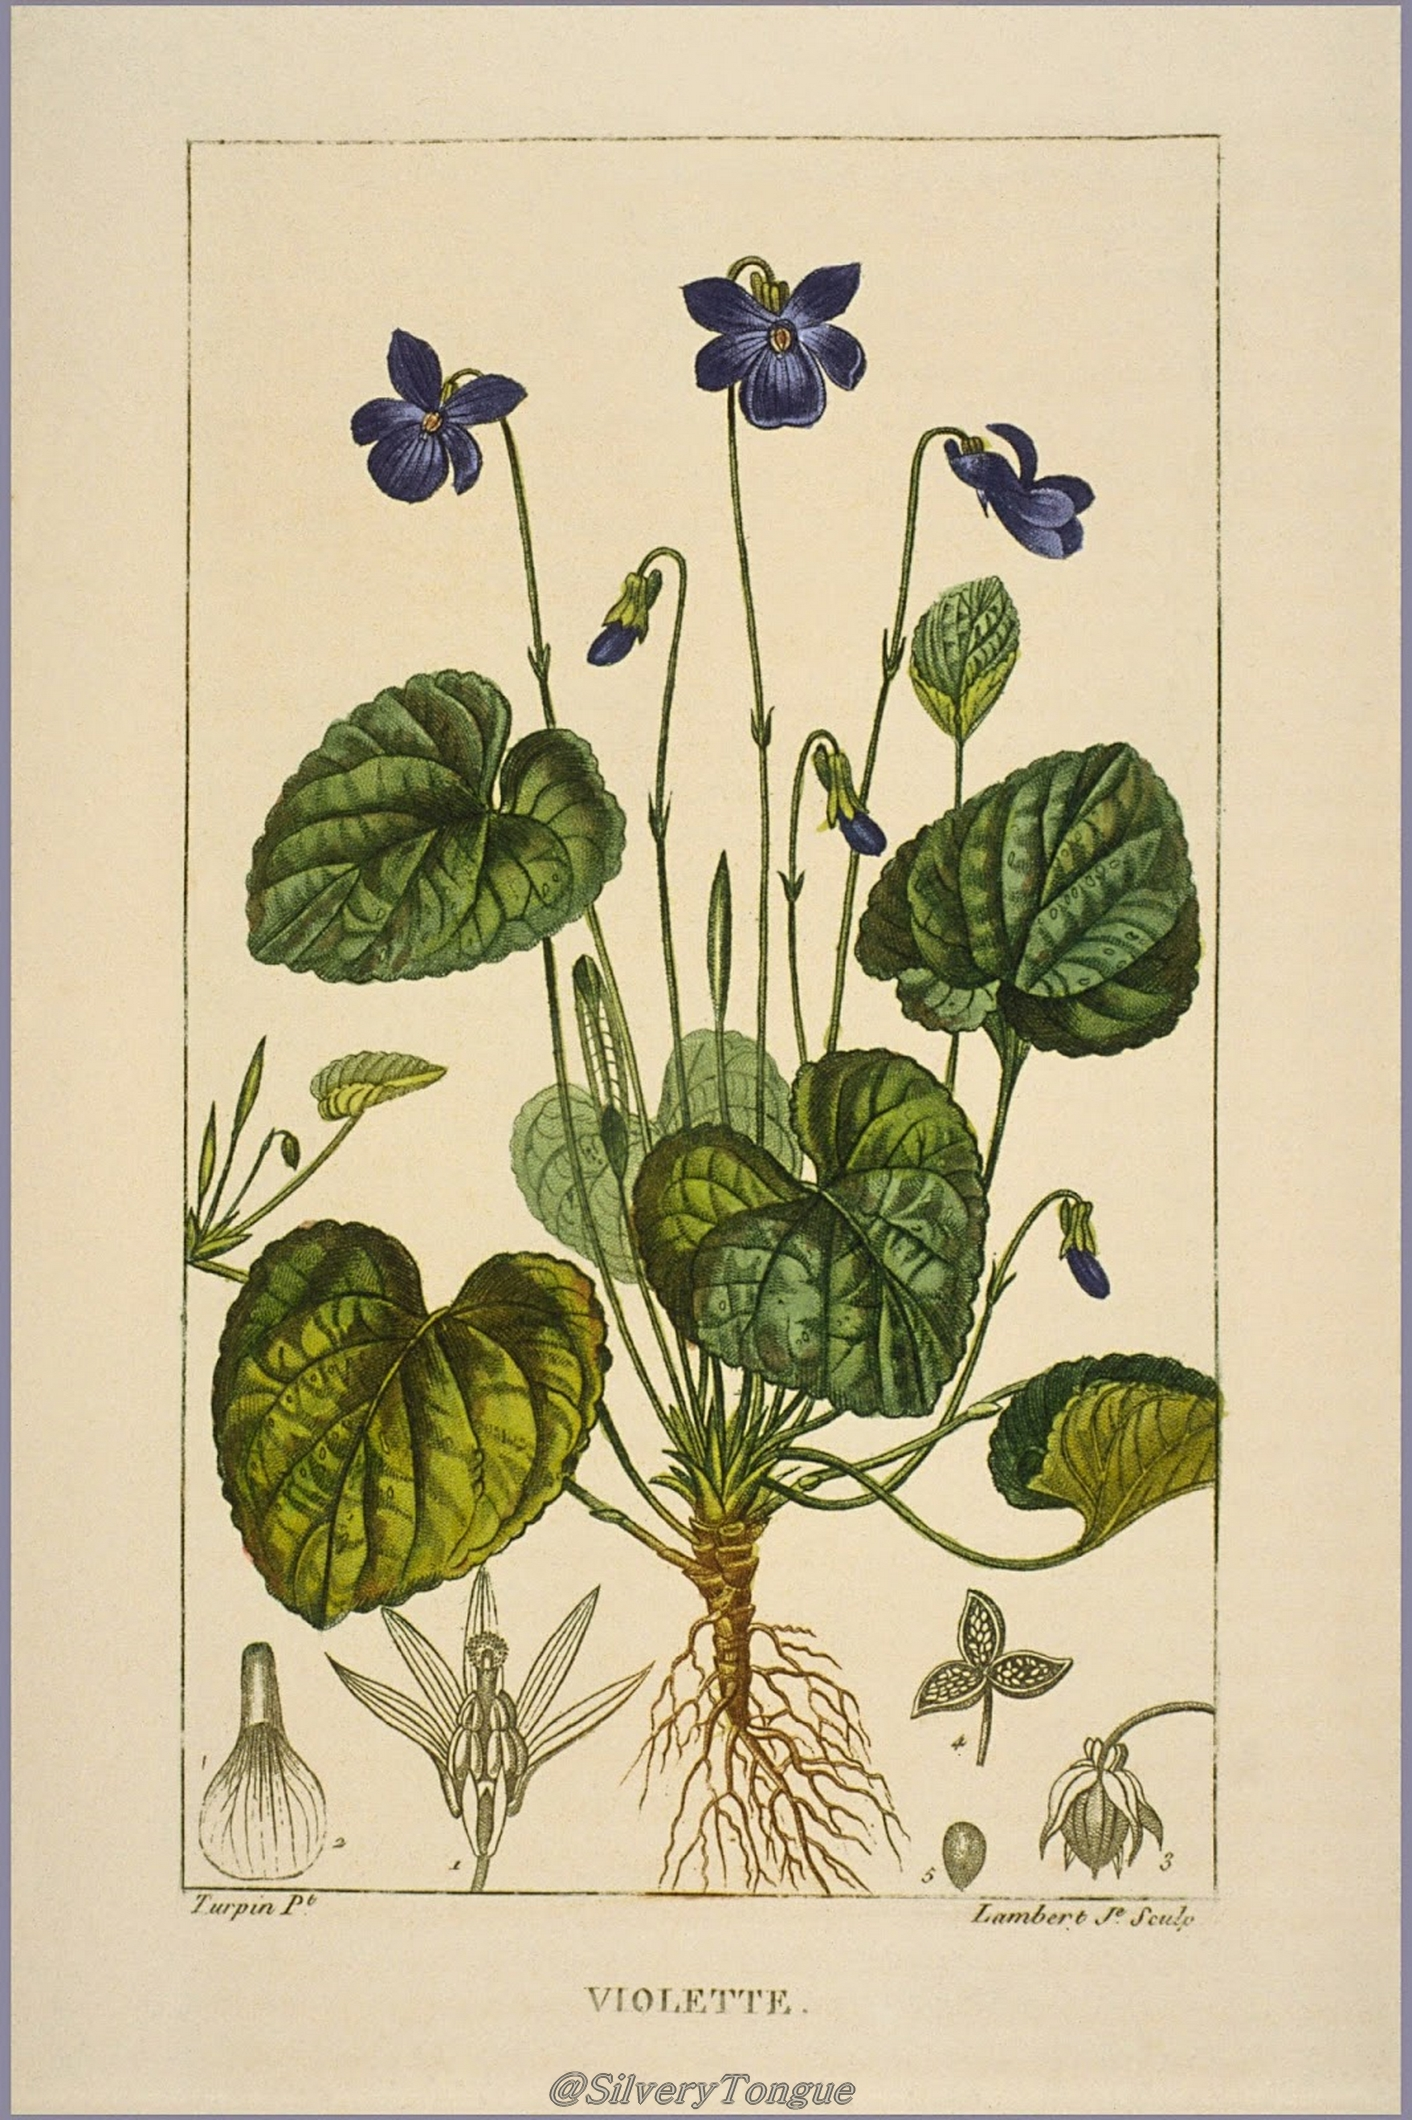 Wood Violet, Pierre Jean François Turpin, (1775-1840), (Image courtesy of Musee National d'Histoire Naturelle)